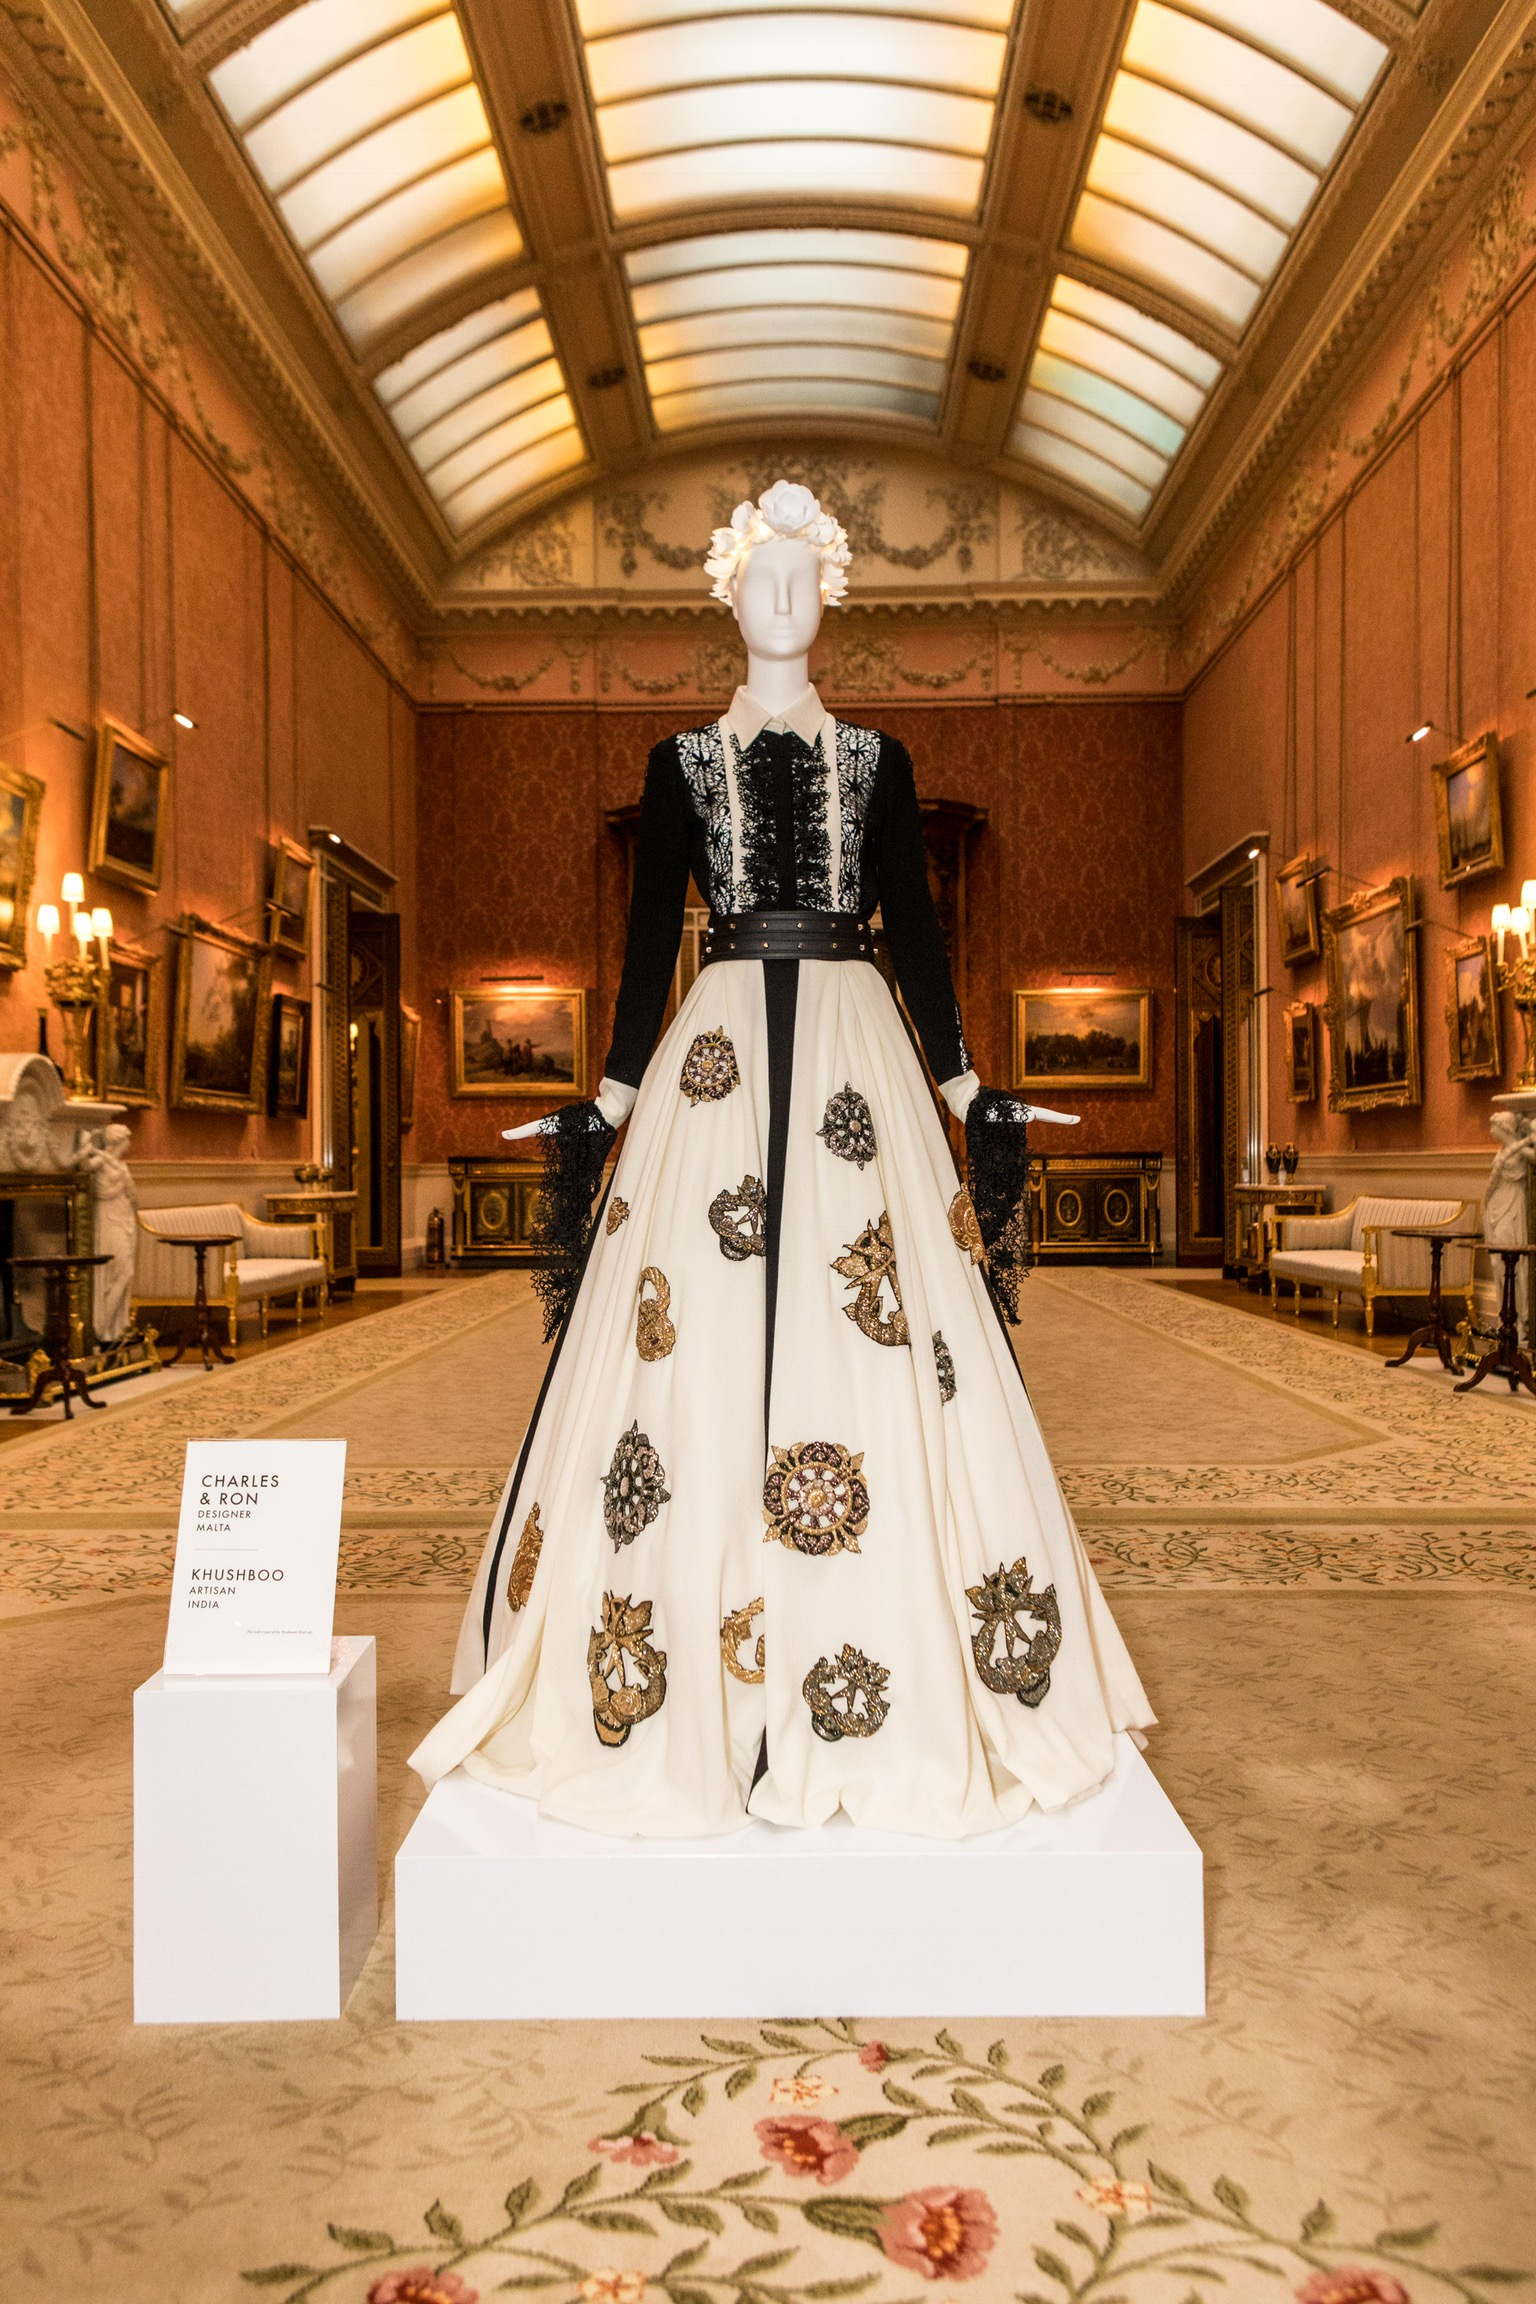 The gown in Buckingham Palace 2